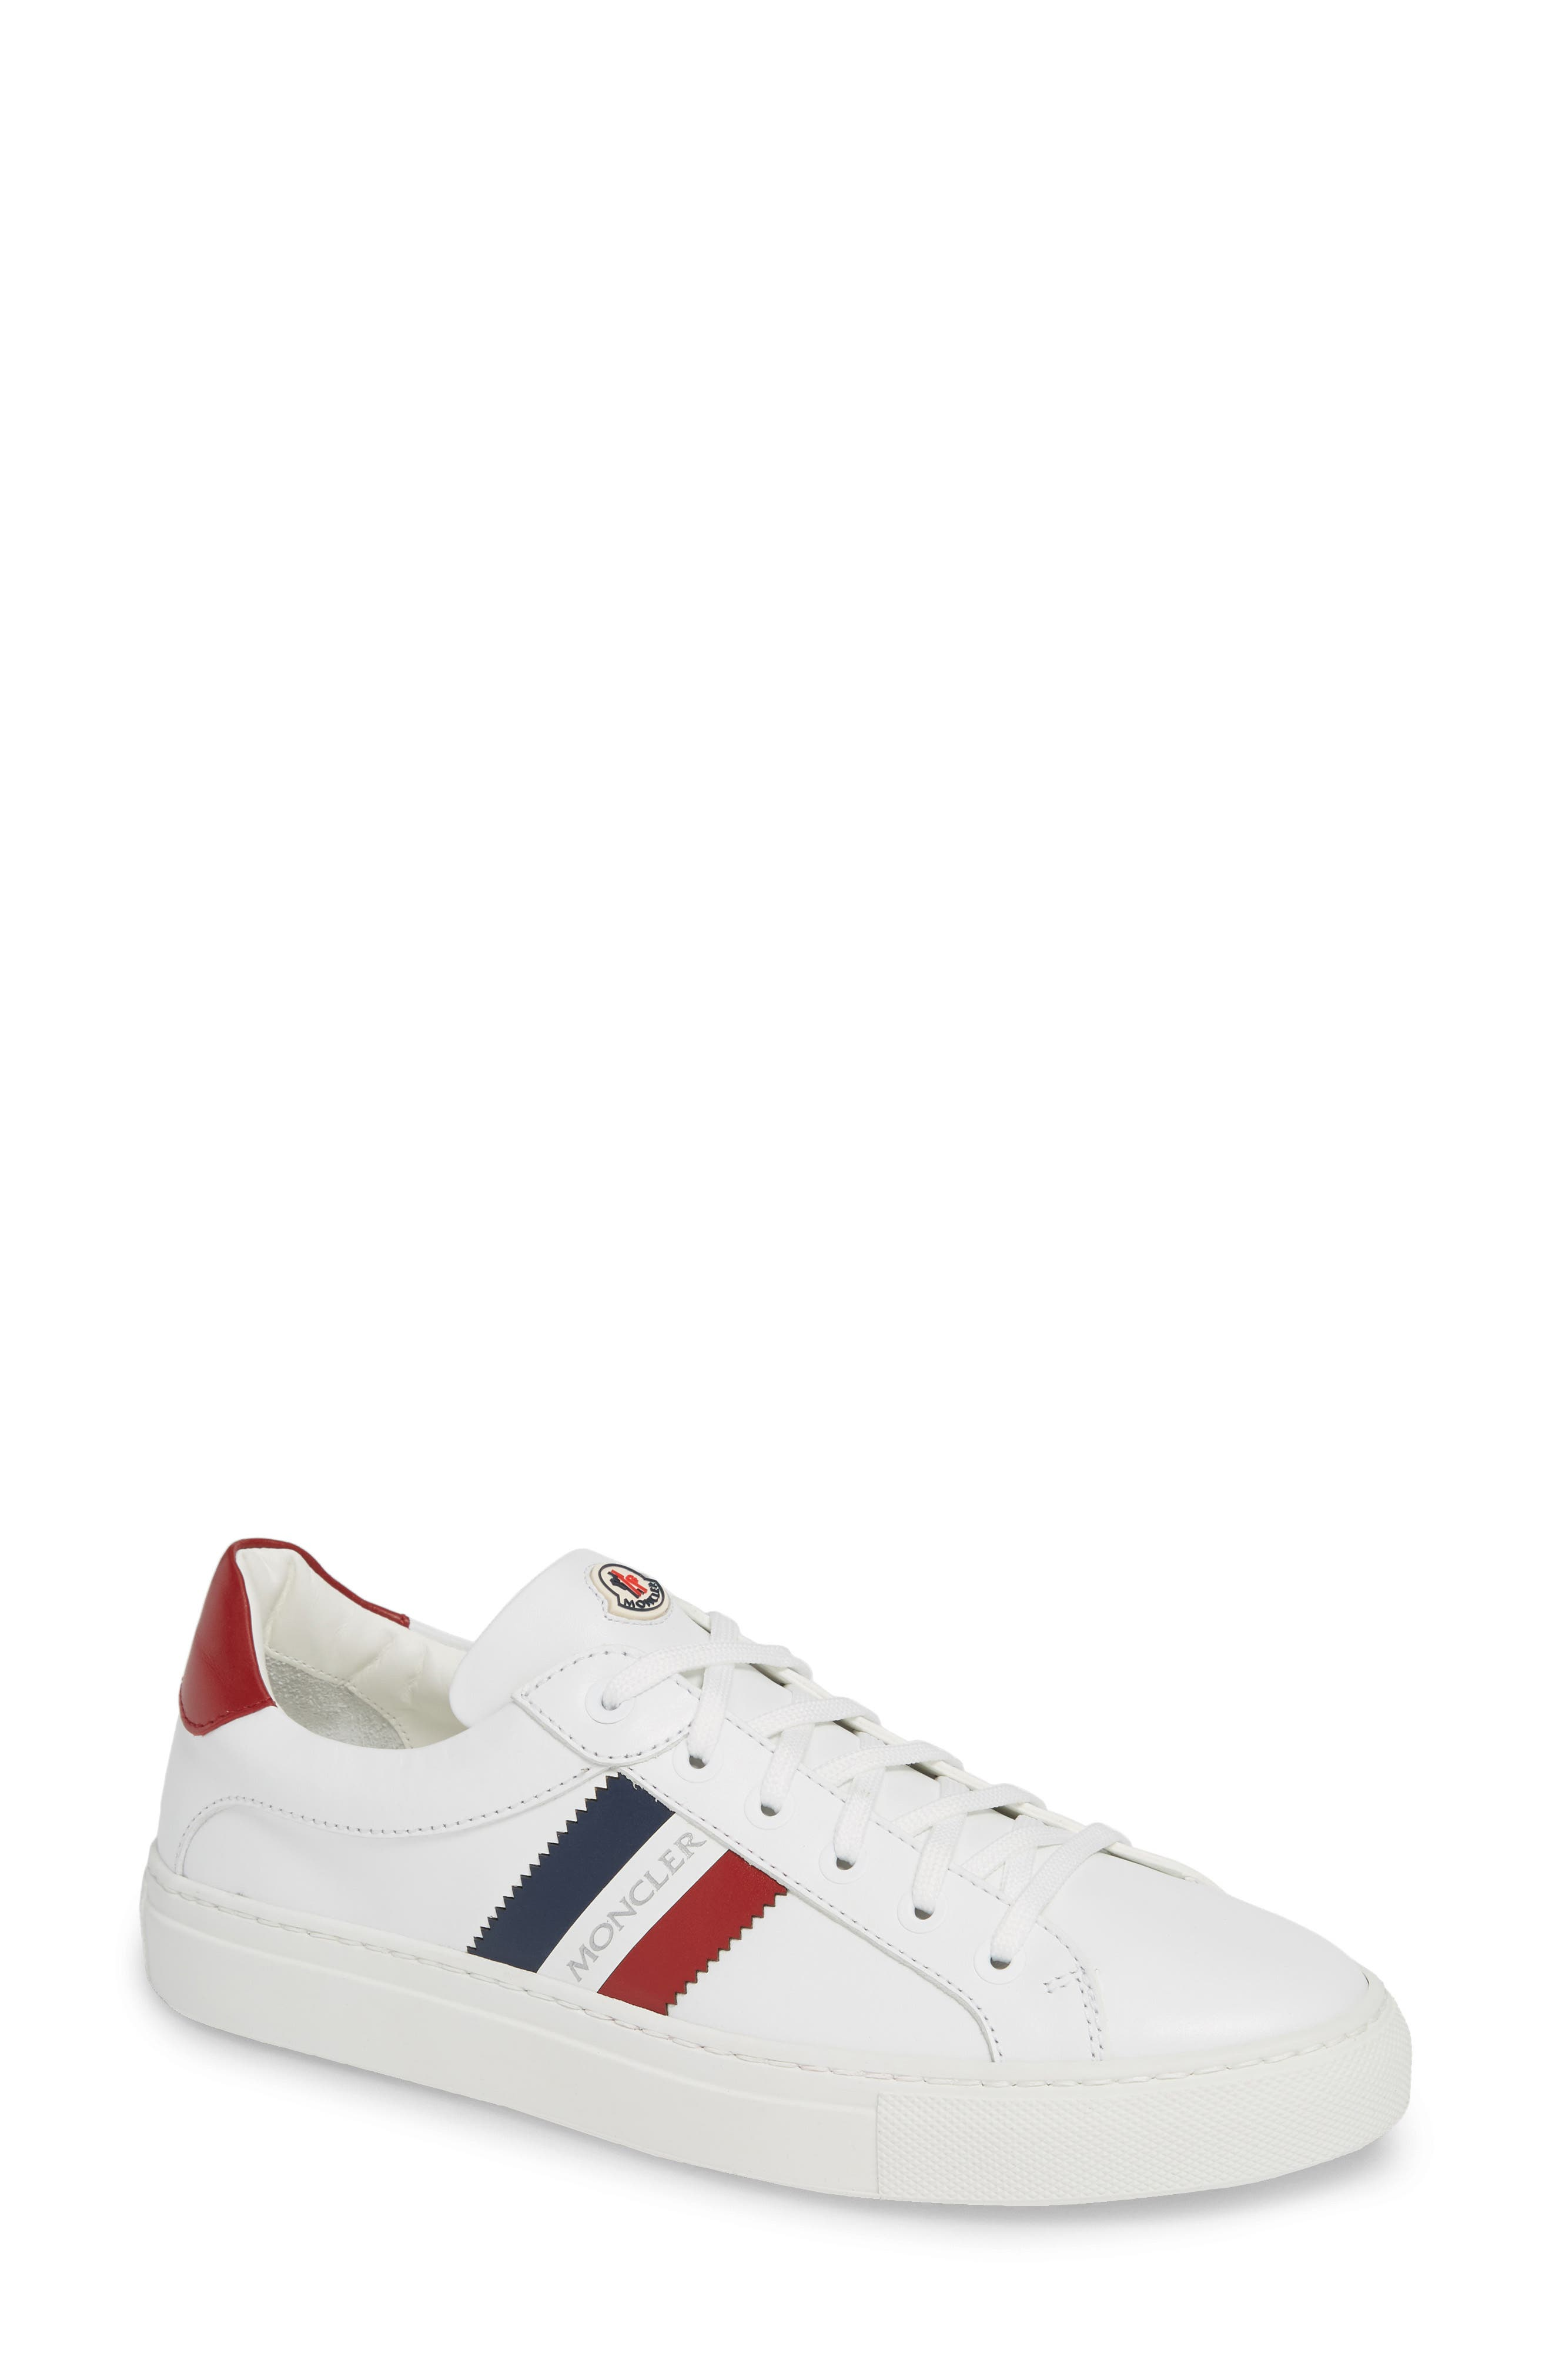 New Leni Scarpa Sneaker,                         Main,                         color, WHITE